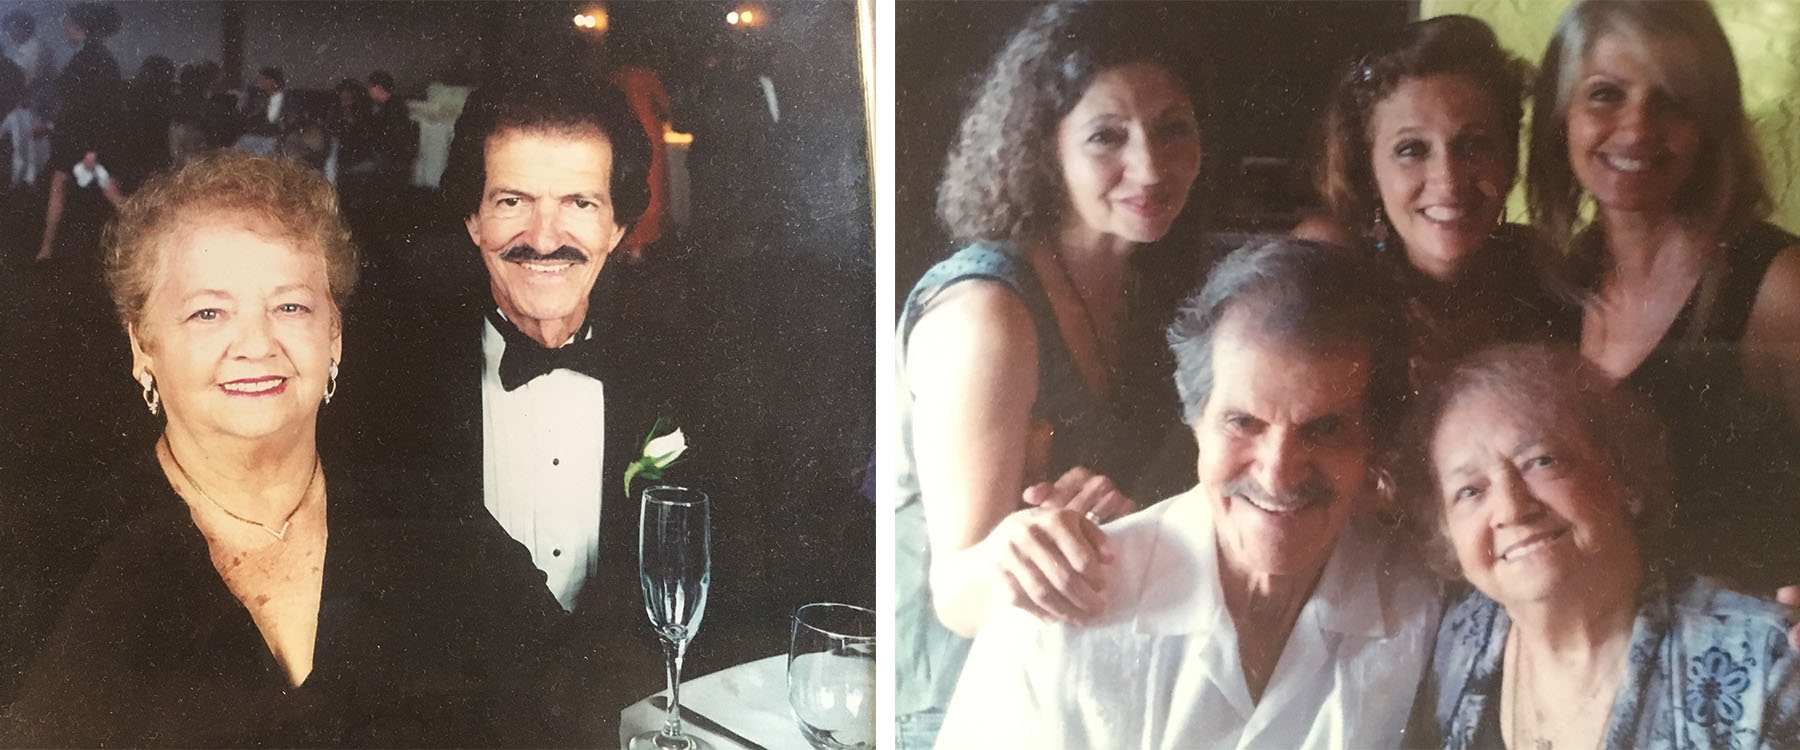 On left, the couple in the 90s. On right, the Rodriguez couple with their sweet daughters.